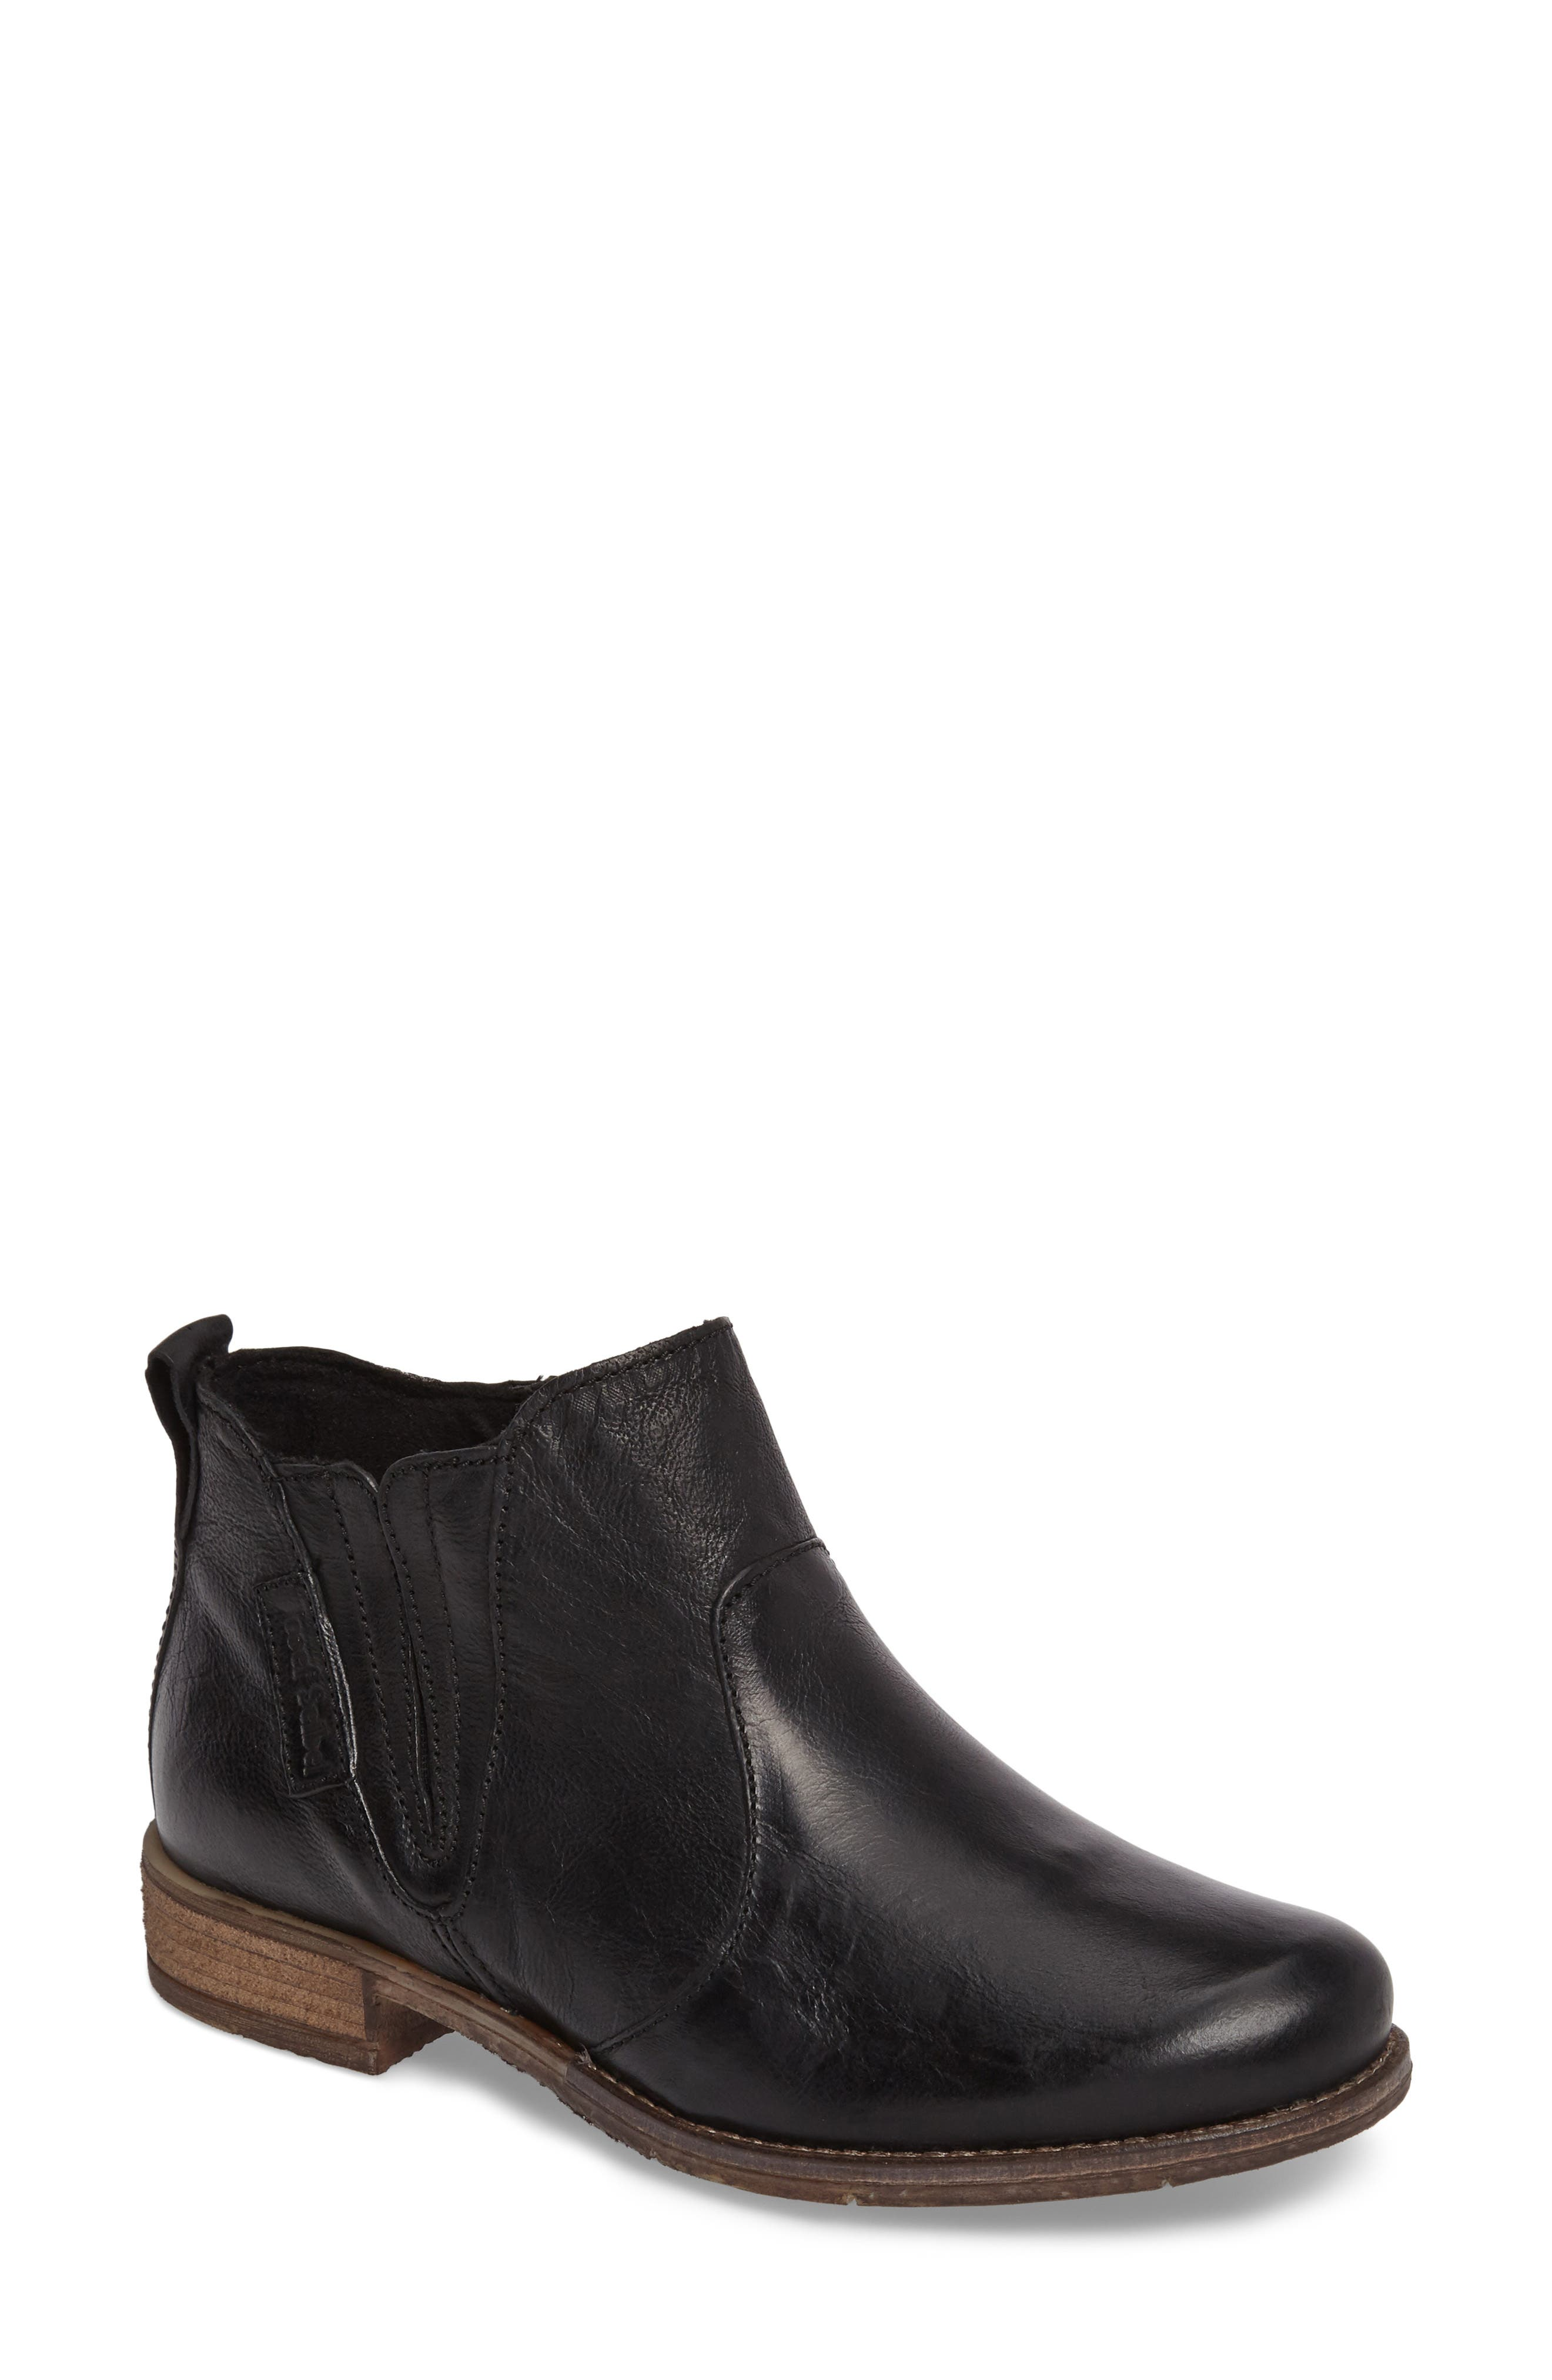 Sienna 45 Chelsea Bootie,                             Main thumbnail 1, color,                             Black Leather